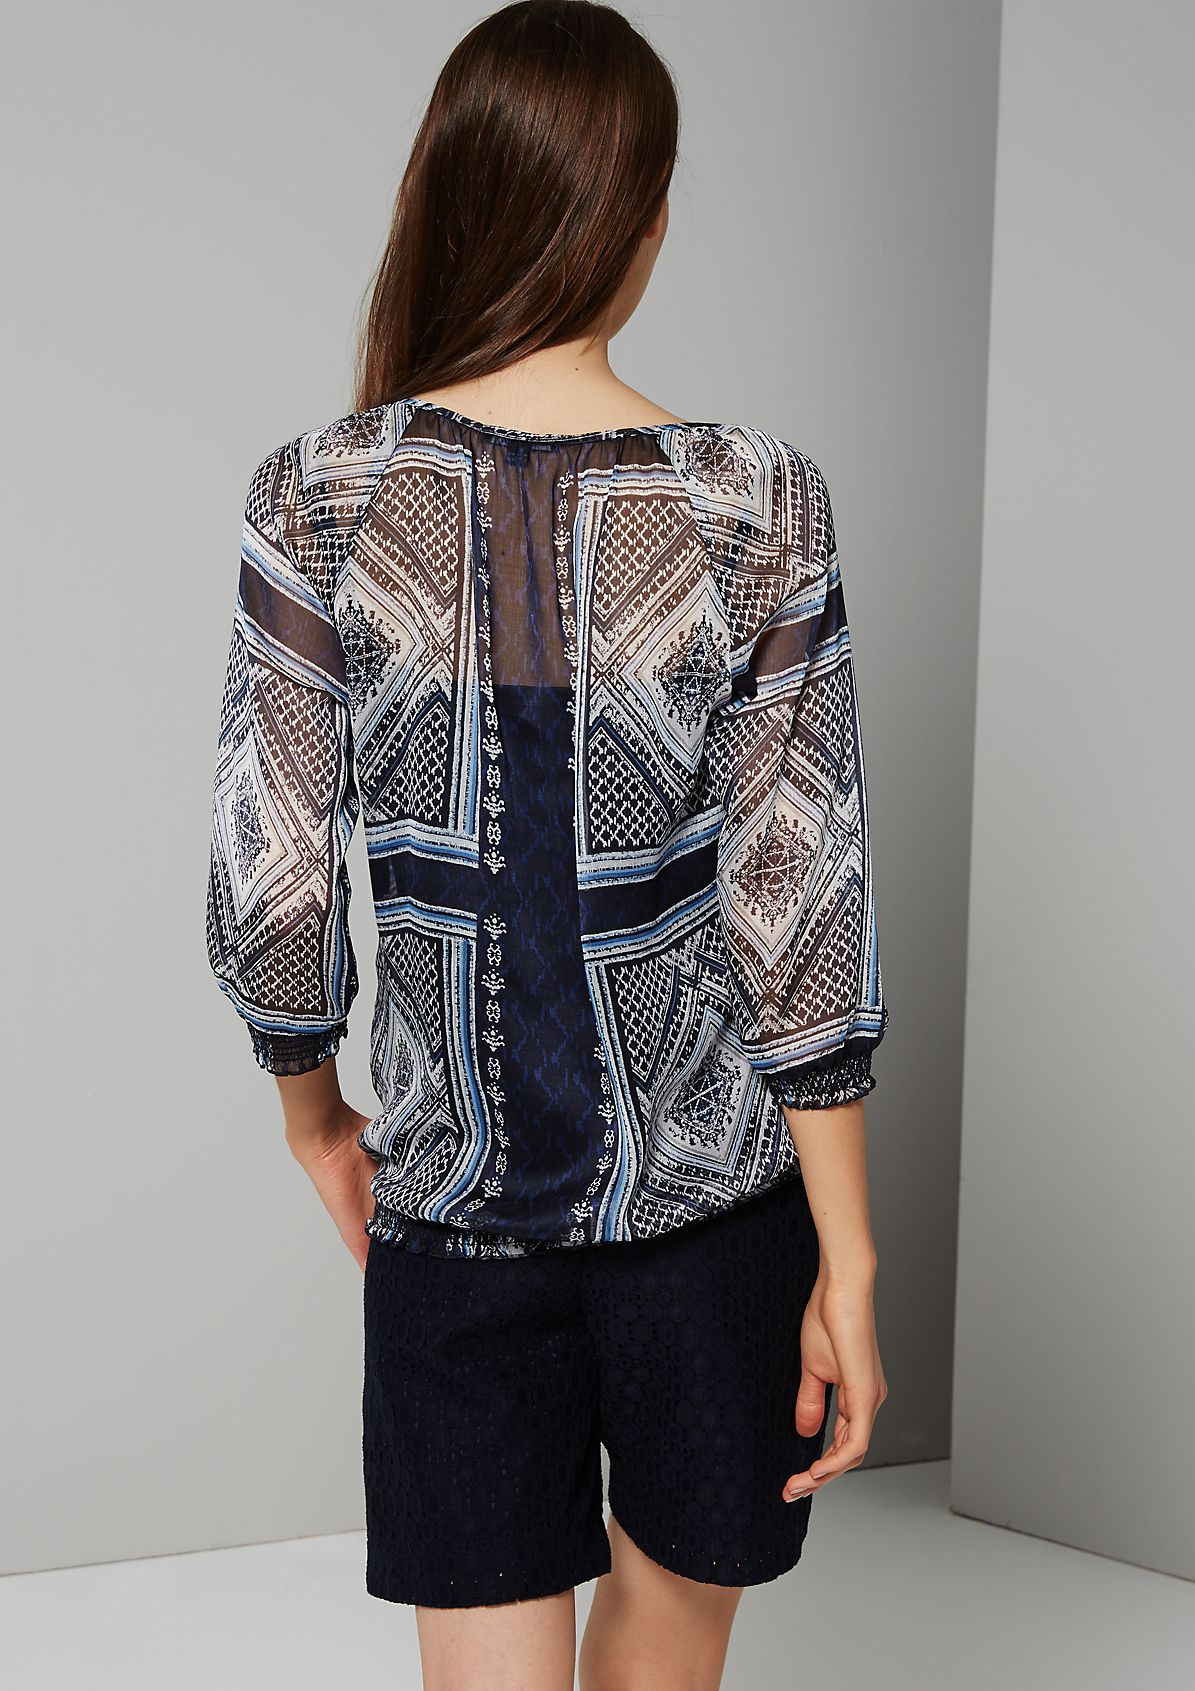 Semi-sheer chiffon blouse with a decorative ornamental pattern from s.Oliver